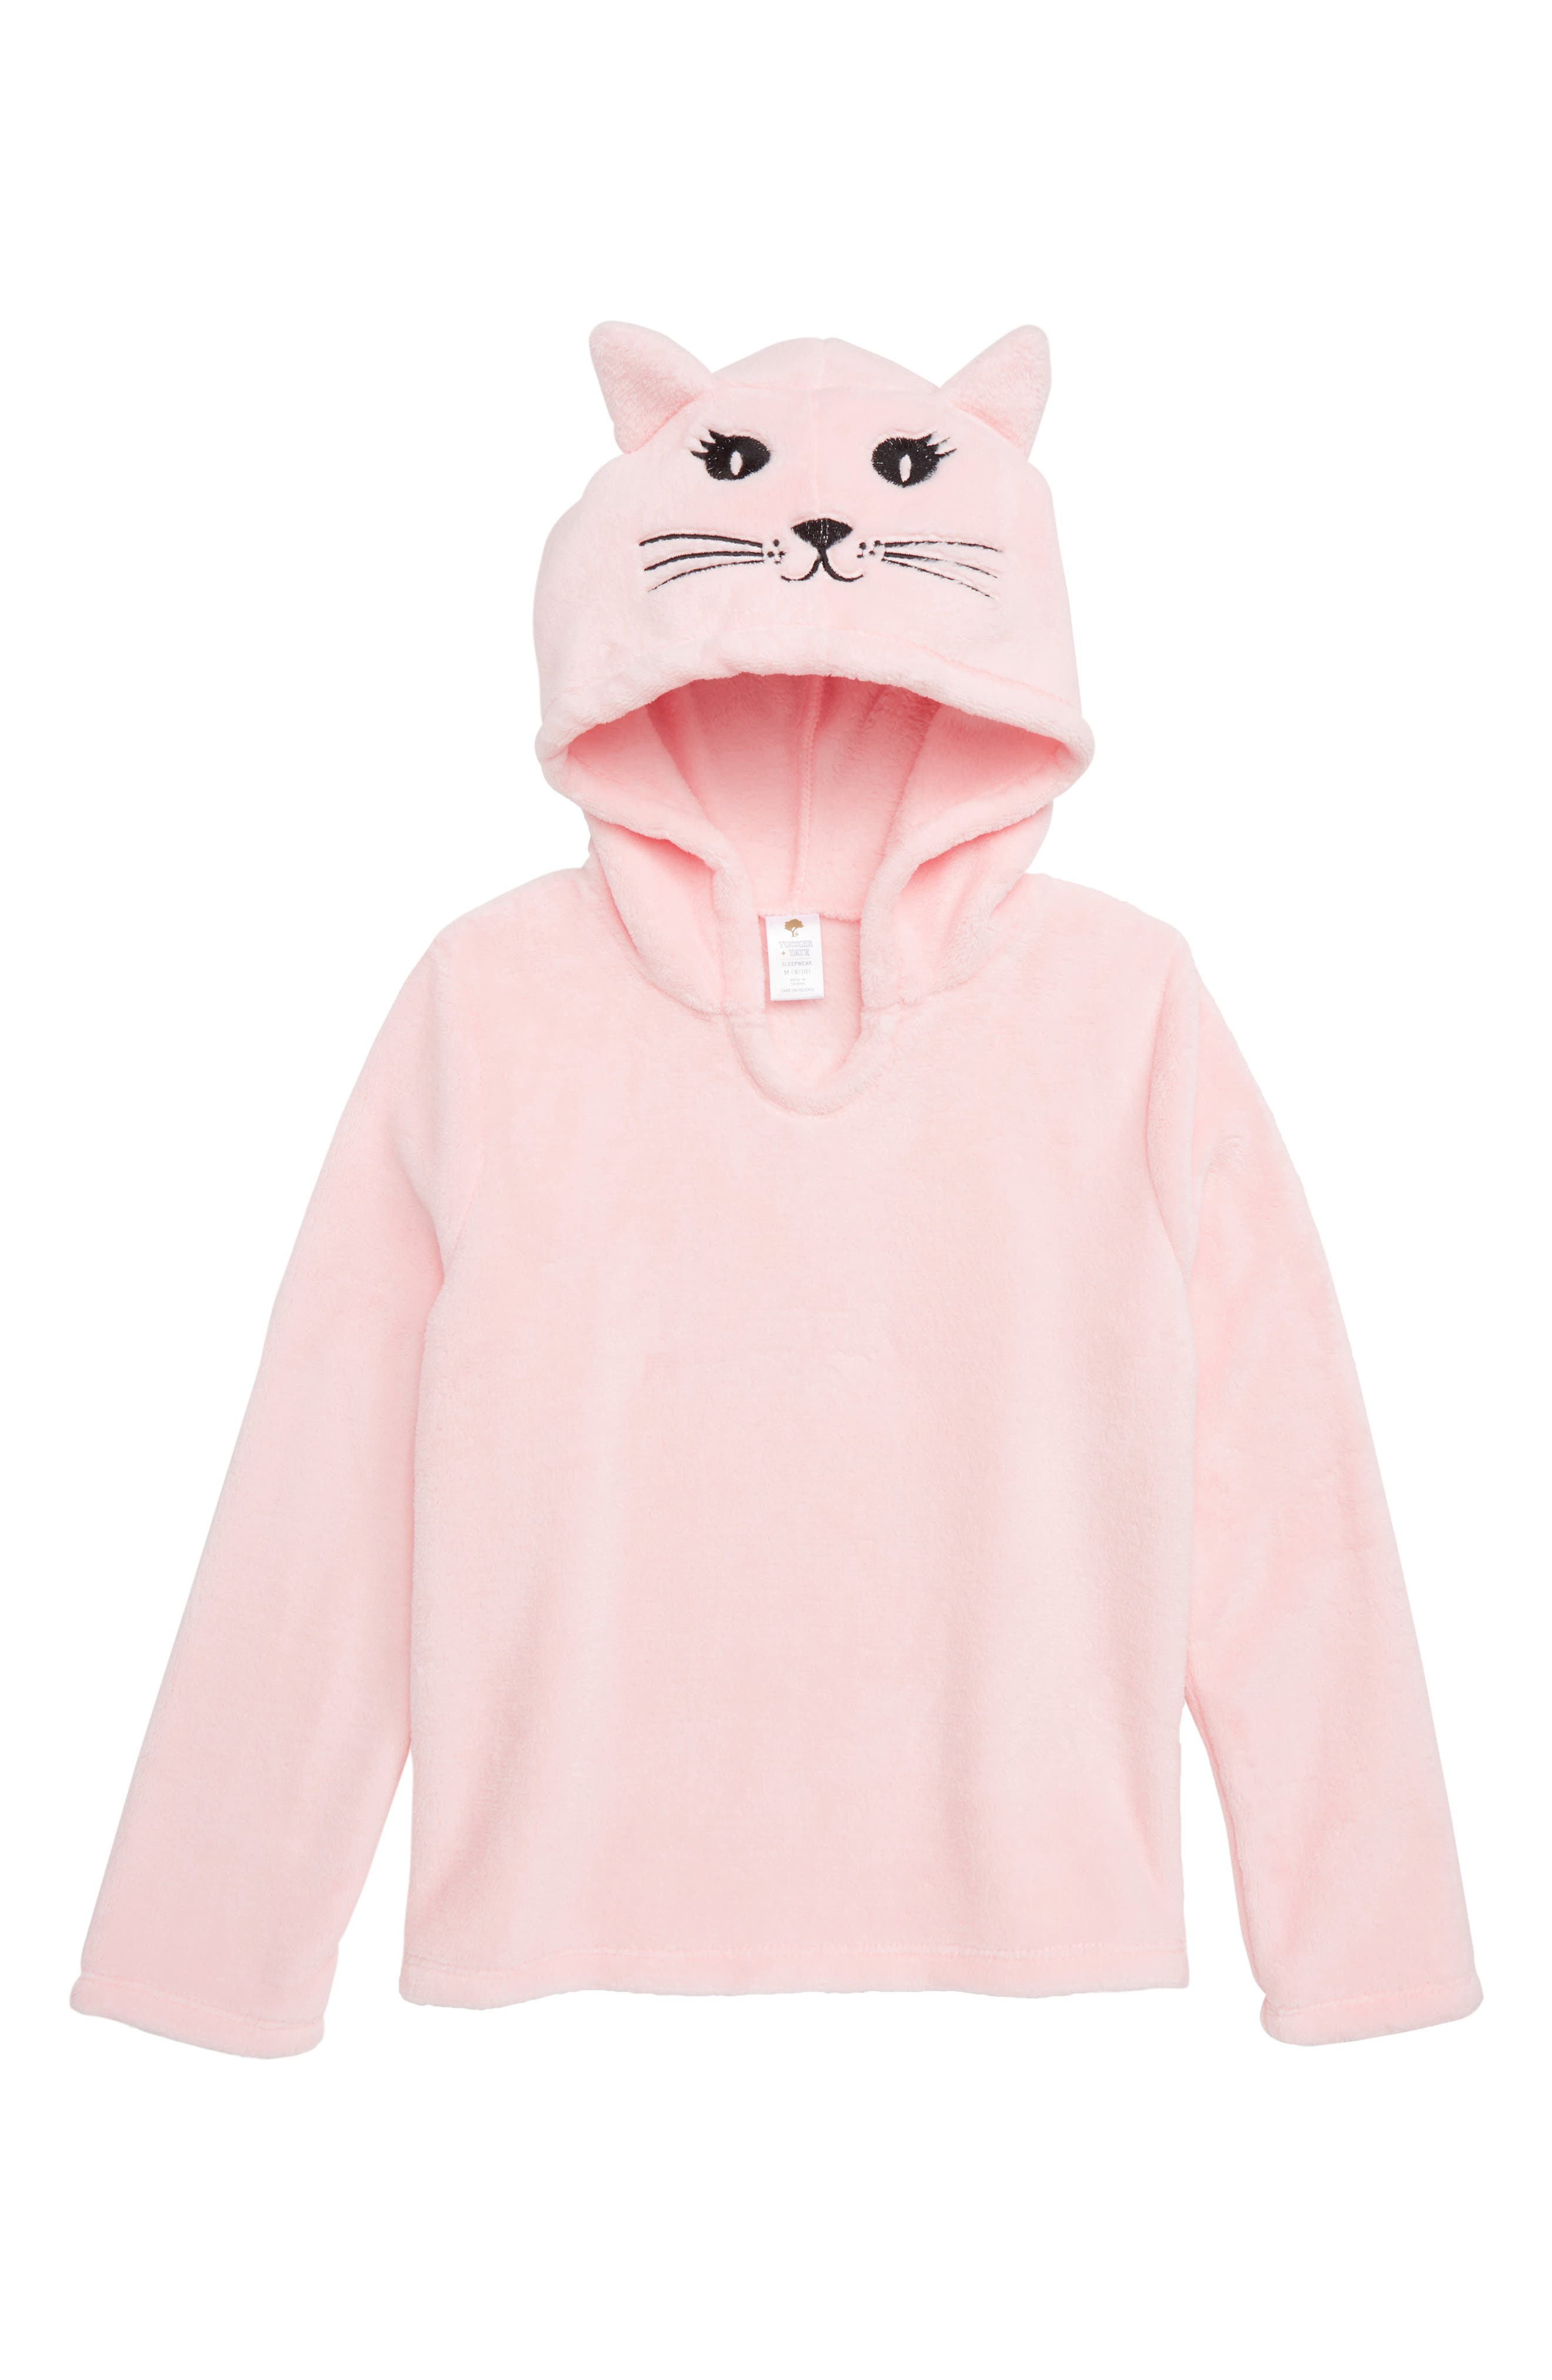 Animal Plush Fleece Pajama Hoodie,                             Main thumbnail 1, color,                             PINK BABY CAT FACE